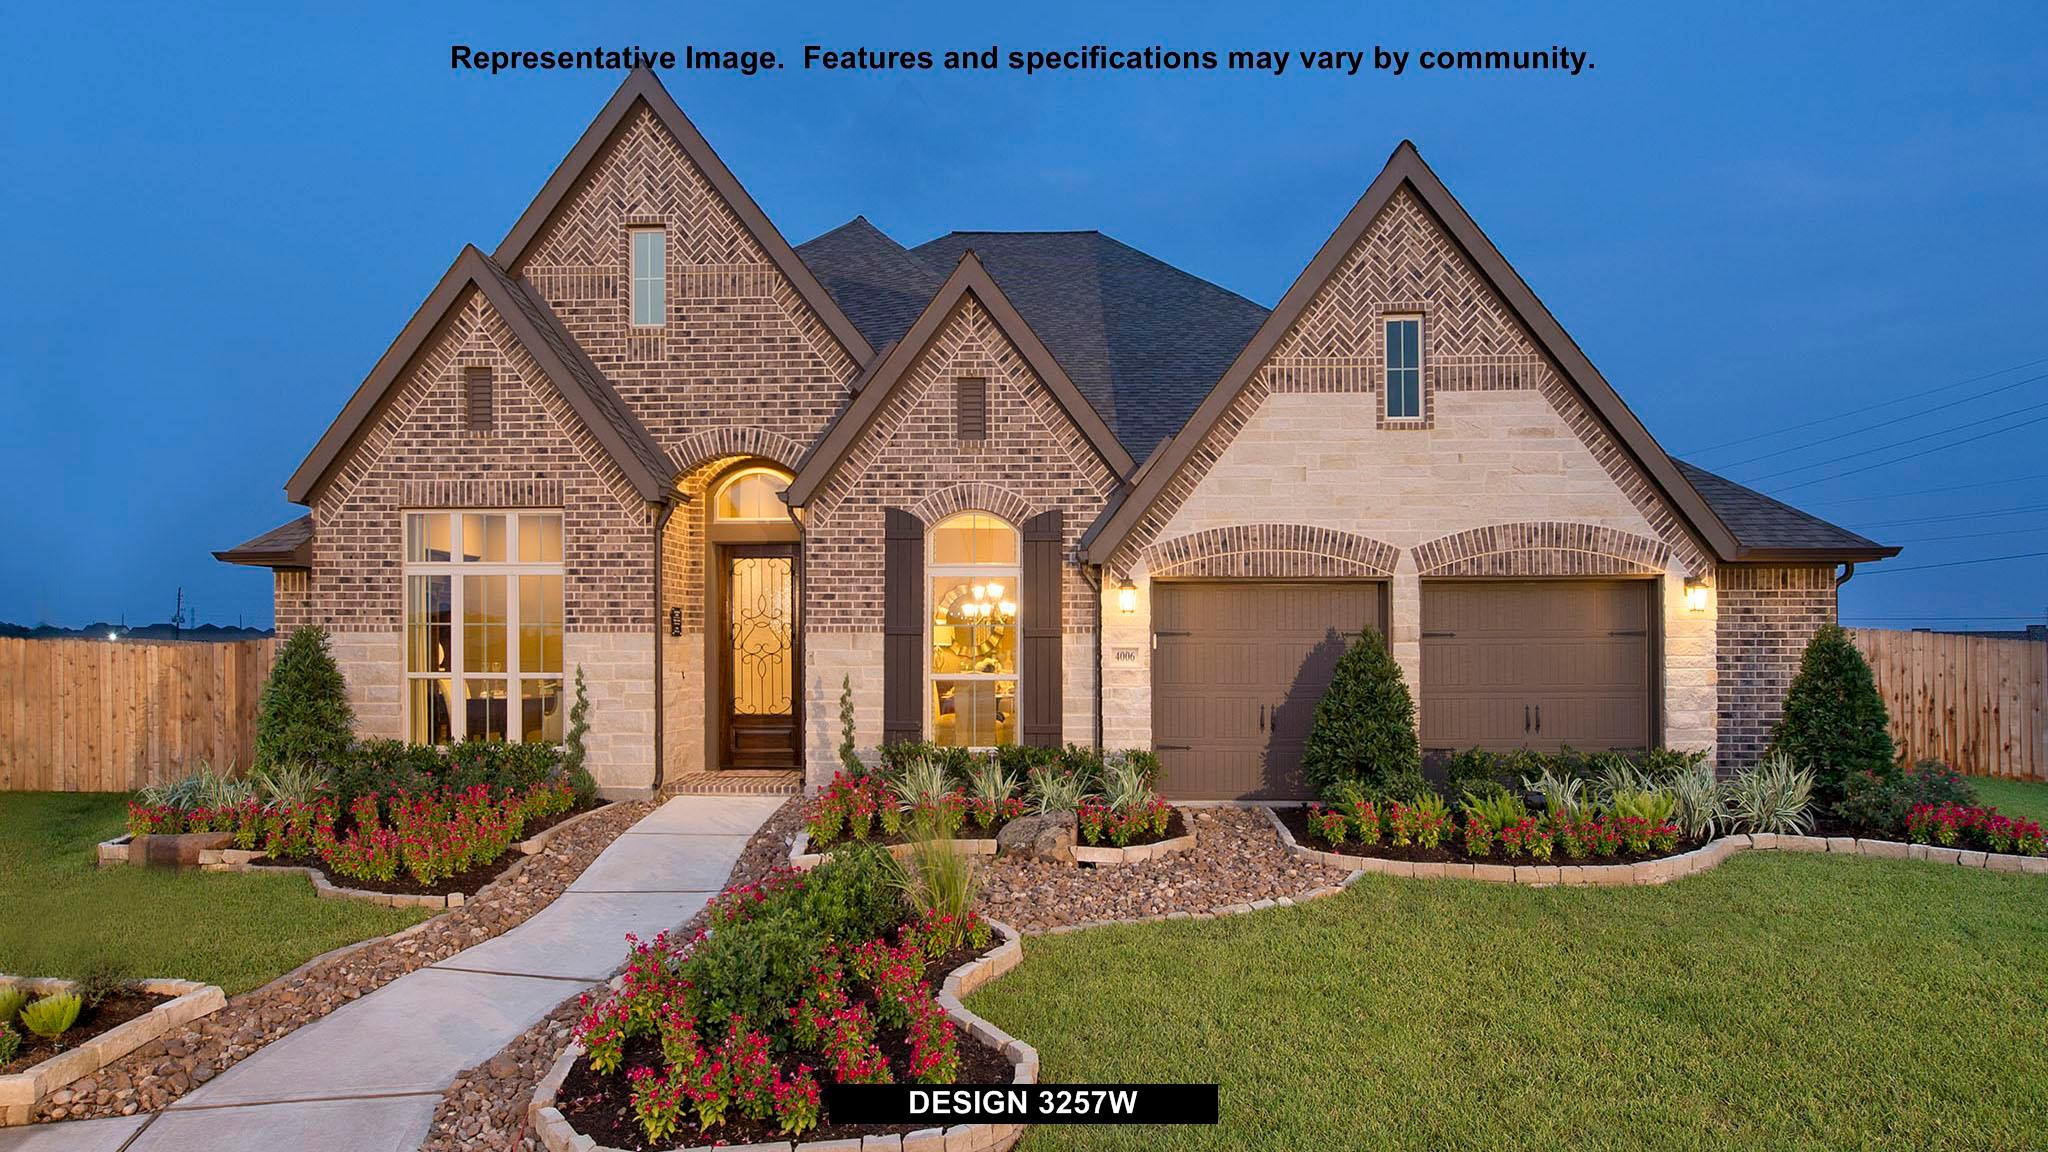 3257W - Cross Creek Ranch: Cross Creek Ranch 60': Fulshear, TX - Perry Homes